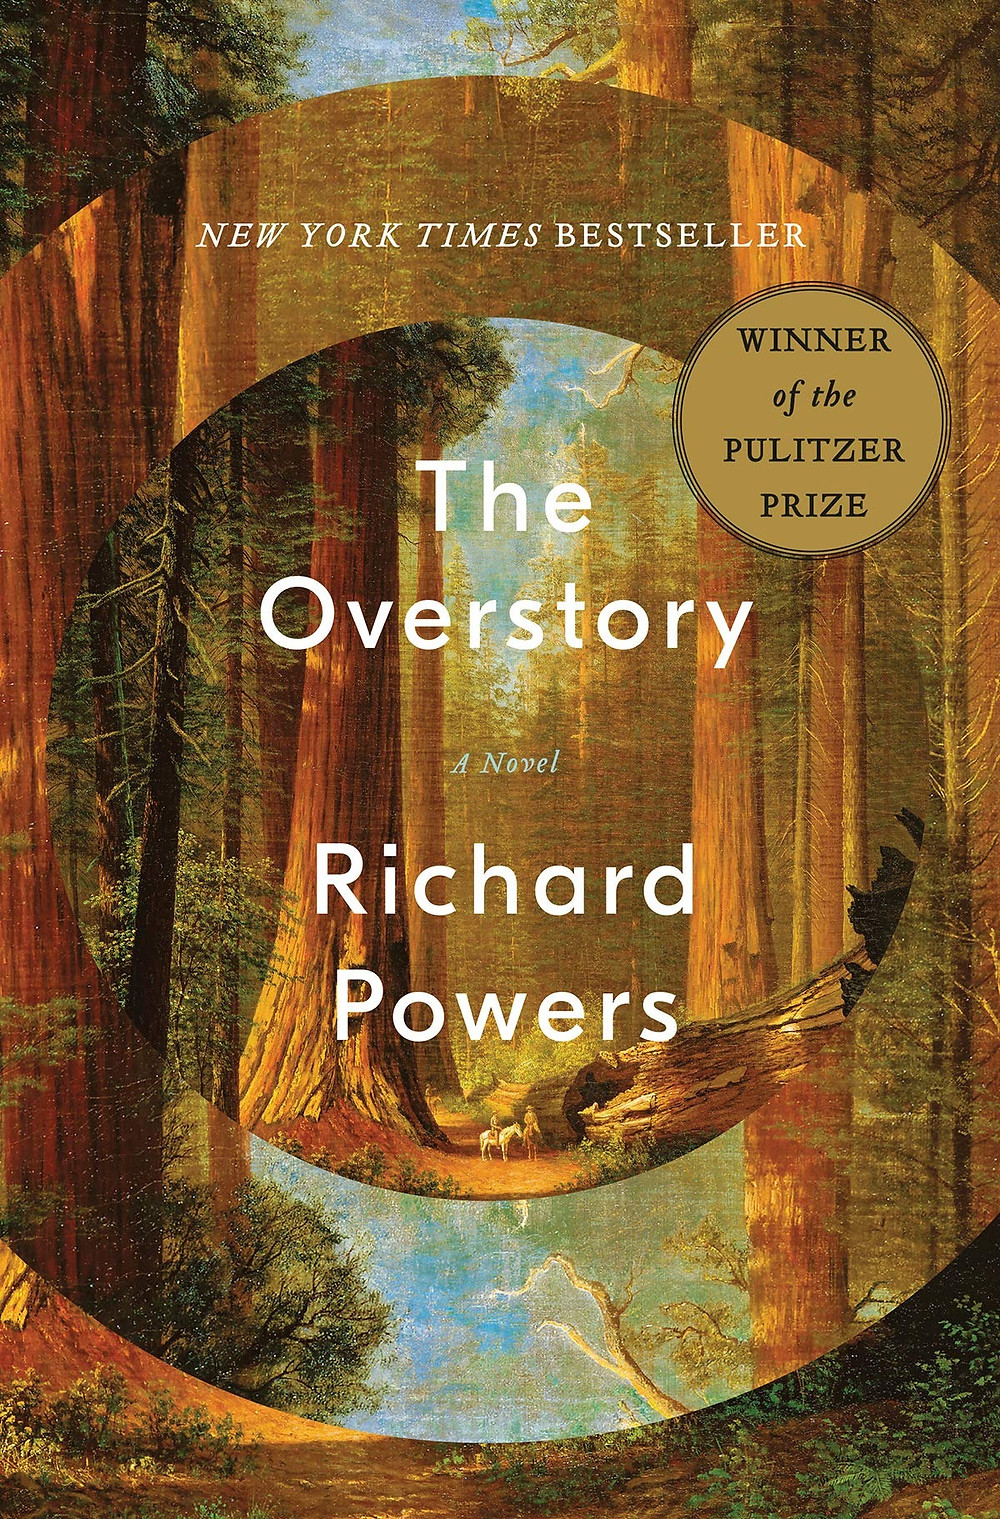 "The Overstory by Richard Powers thebookslut Winner of the William Dean Howells Medal #1 New York Times Bestseller Shortlisted for the Man Booker Prize A New York Times Notable Book and a Washington Post, Time, Oprah Magazine, Newsweek, Chicago Tribune, and Kirkus Reviews Best Book of the Year  ""The best novel ever written about trees, and really just one of the best novels, period."" --Ann Patchett Product Details Price: $18.95  $17.43 Publisher: W. W. Norton & Company Published Date: April 02, 2019 Pages: 512 Dimensions: 5.5 X 1.3 X 8.1 inches 